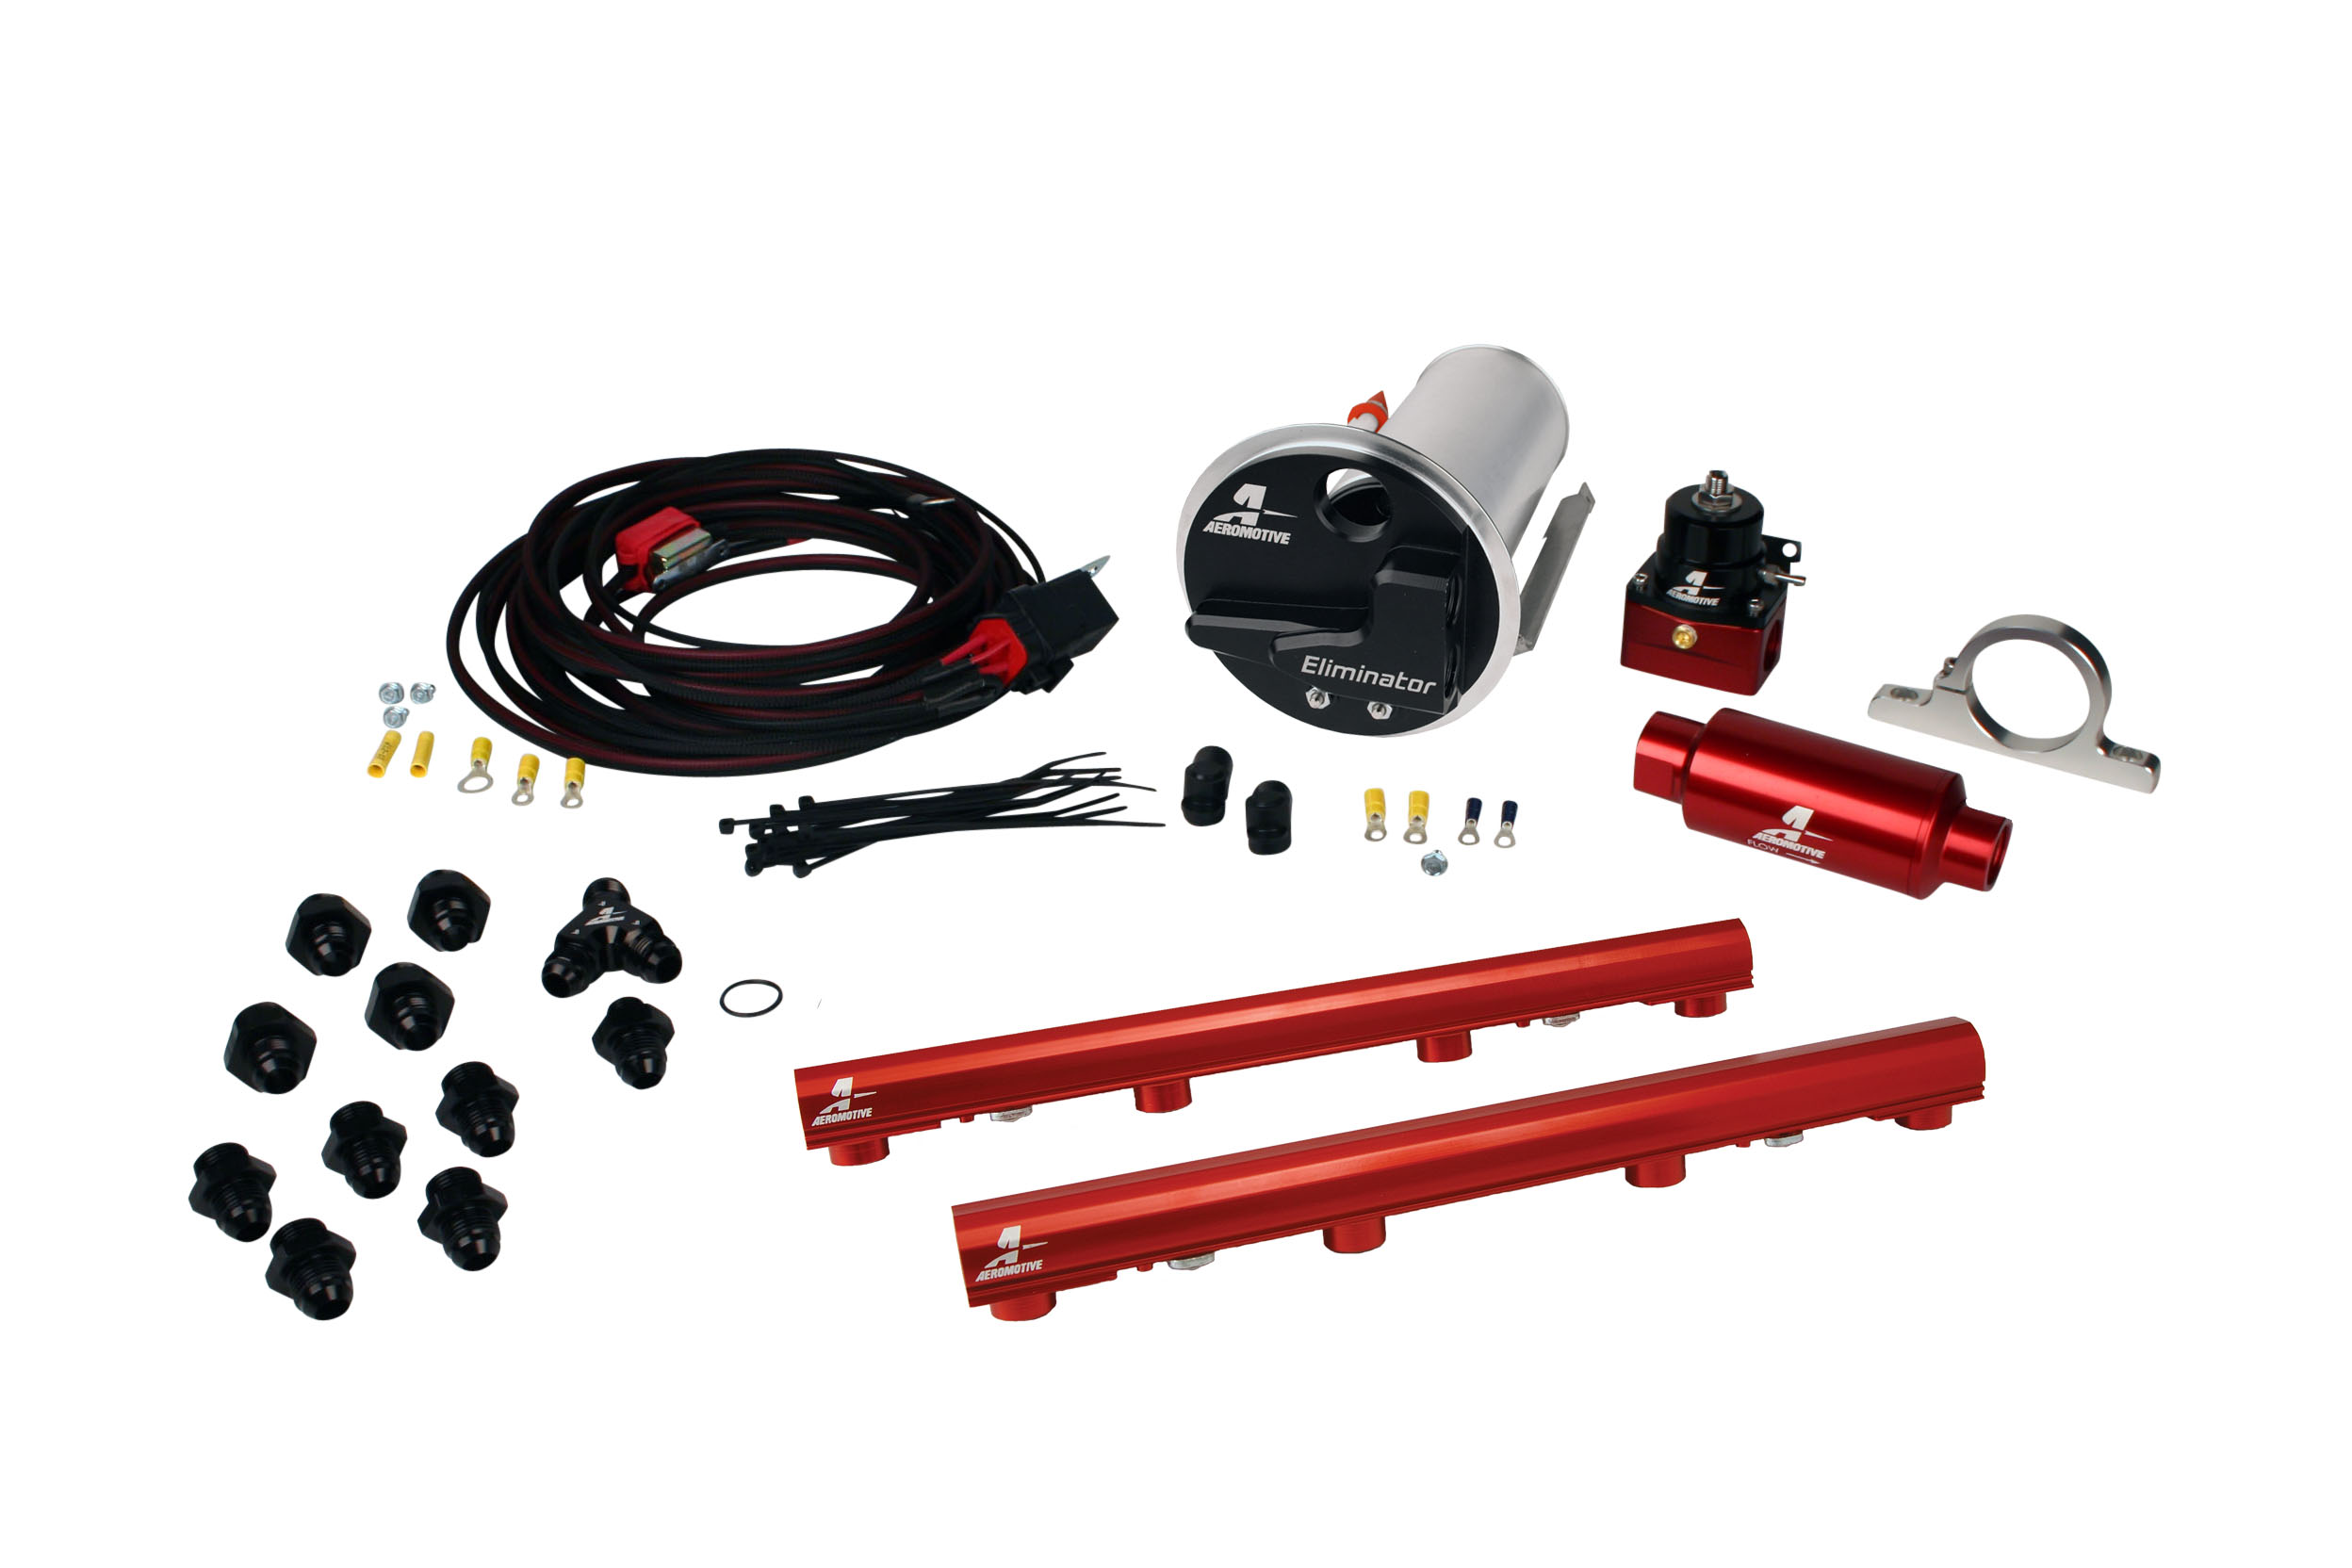 2007-2012 Ford Mustang Shelby GT500 Aeromotive Stealth Eliminator Race Fuel System w/4.6L 3-V Fuel Rails